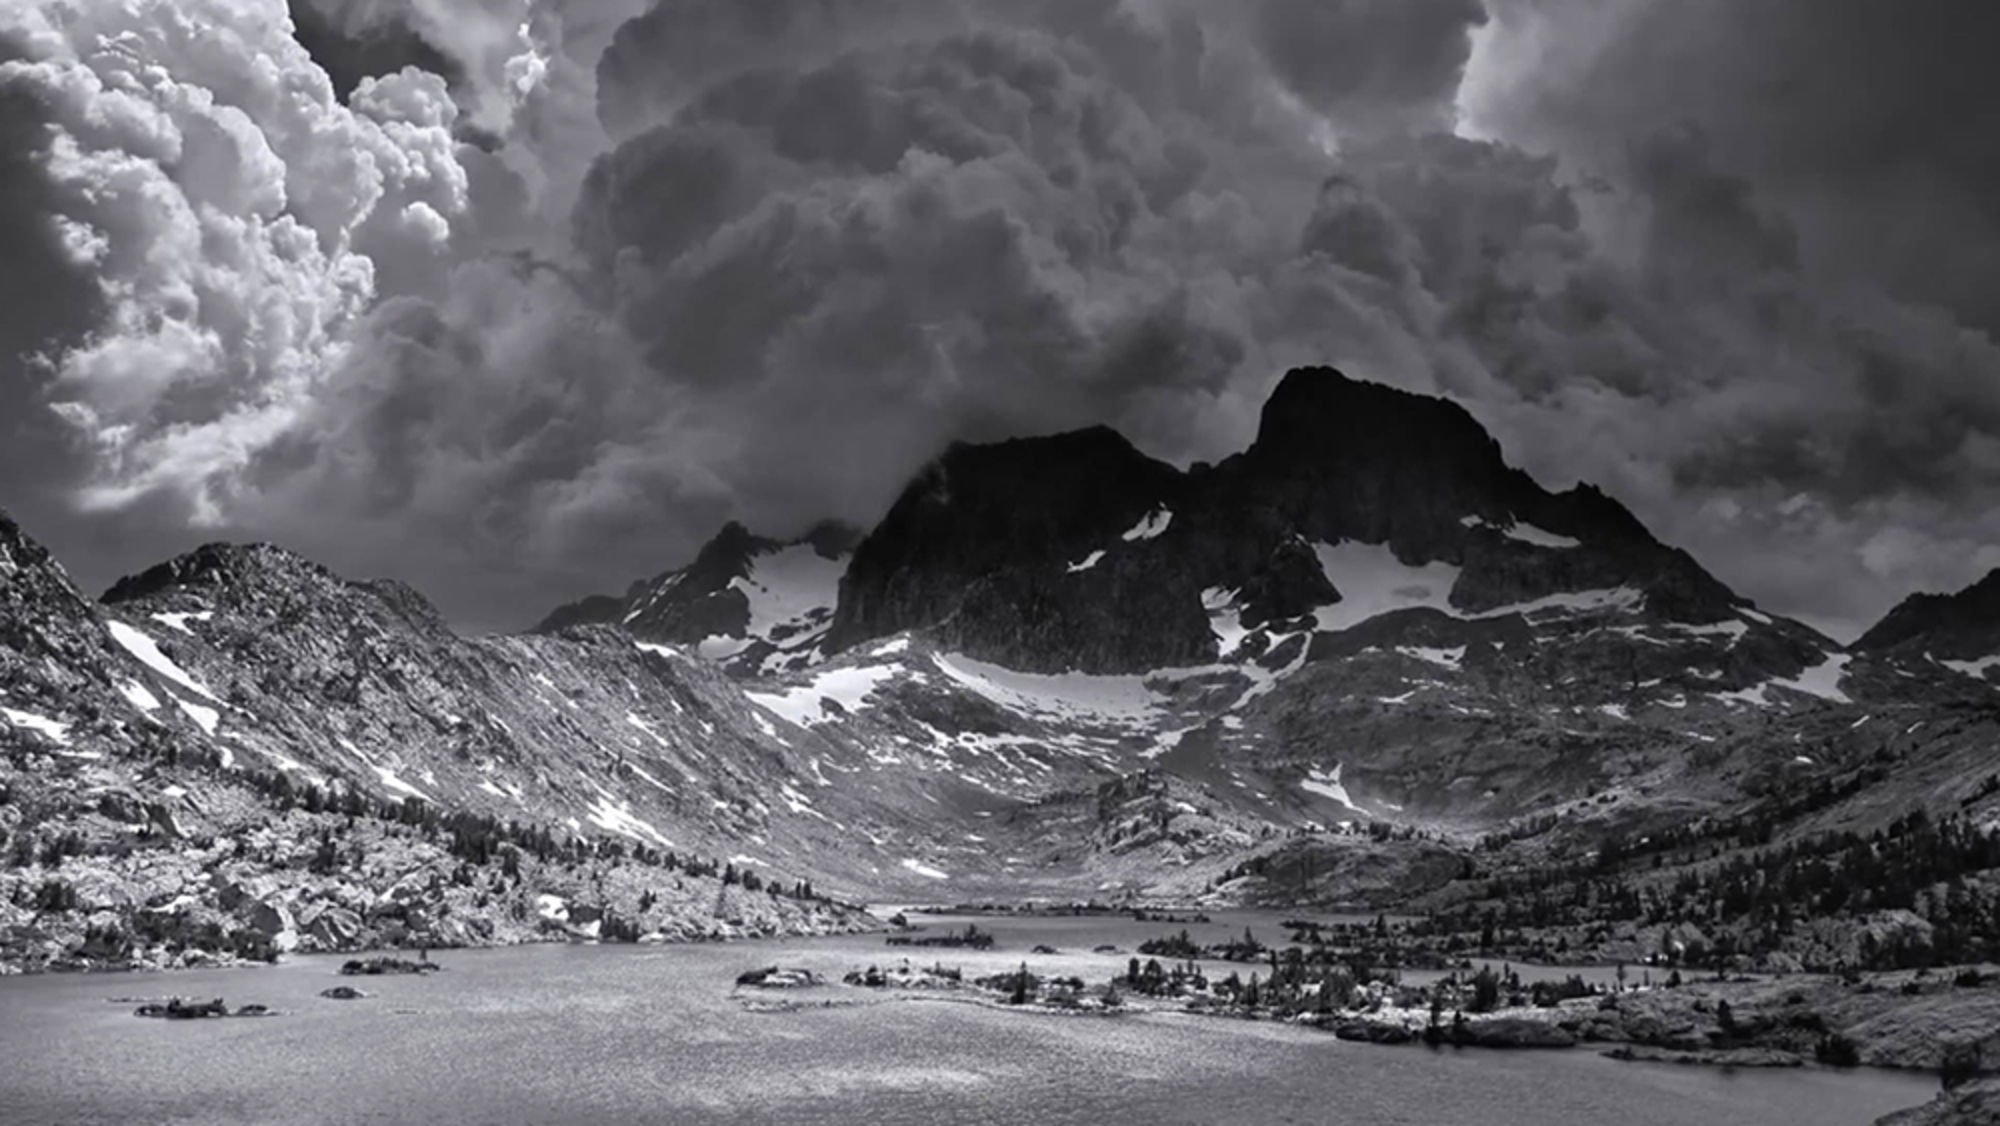 Ansel adams photo essays